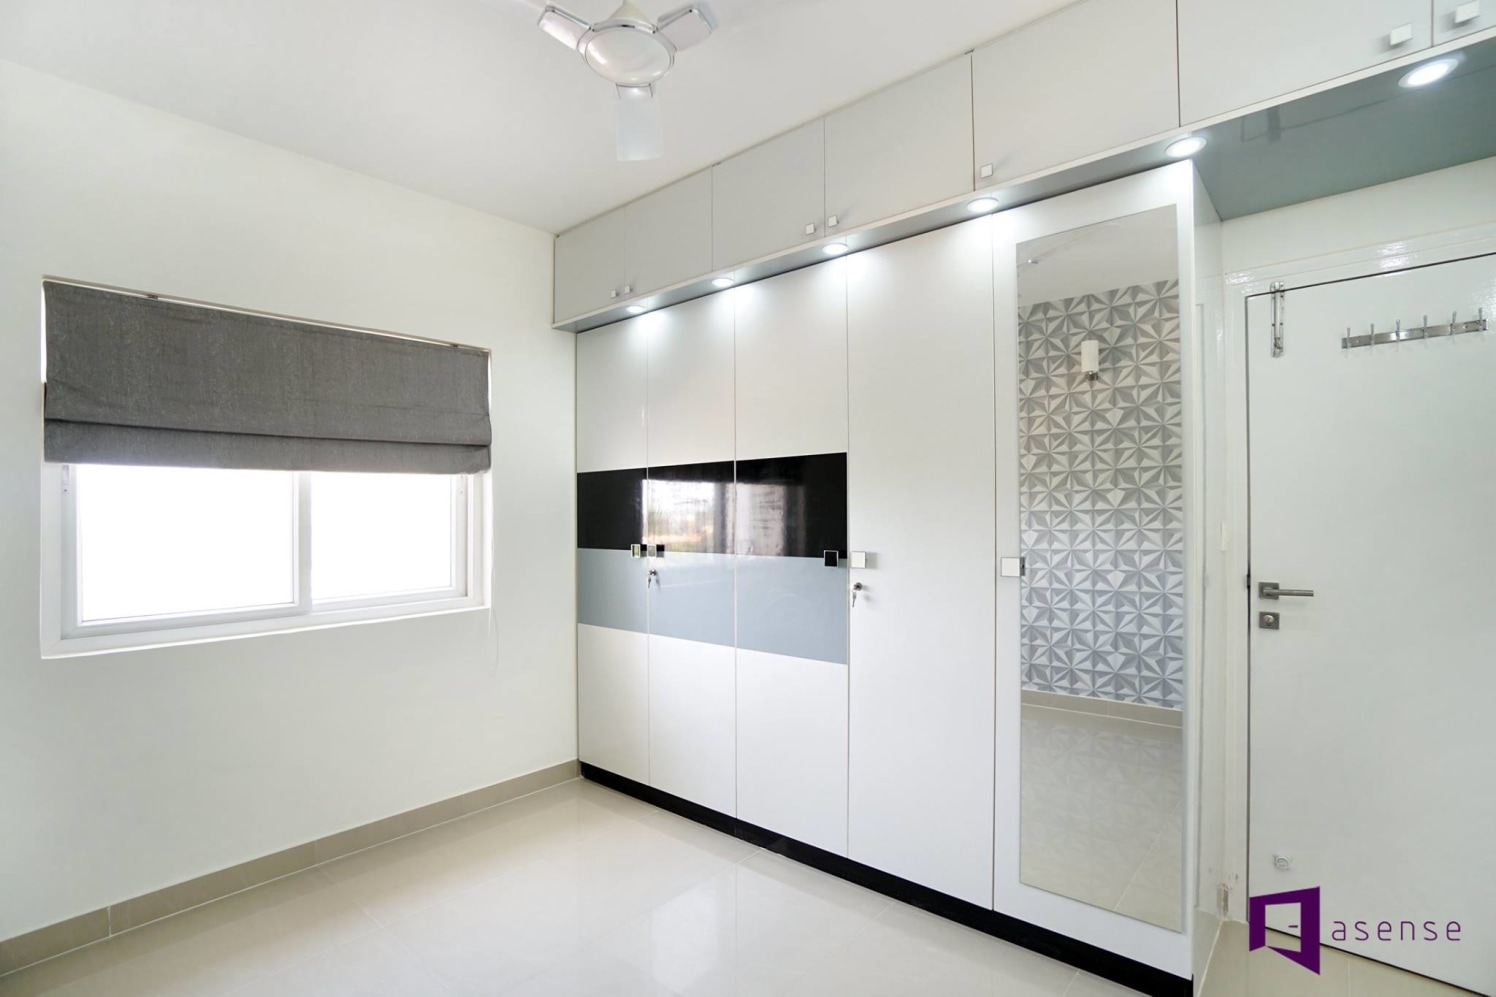 White Themed Bedroom With Fitted Wardrobe by Snigdha Ghosh Bedroom Contemporary | Interior Design Photos & Ideas